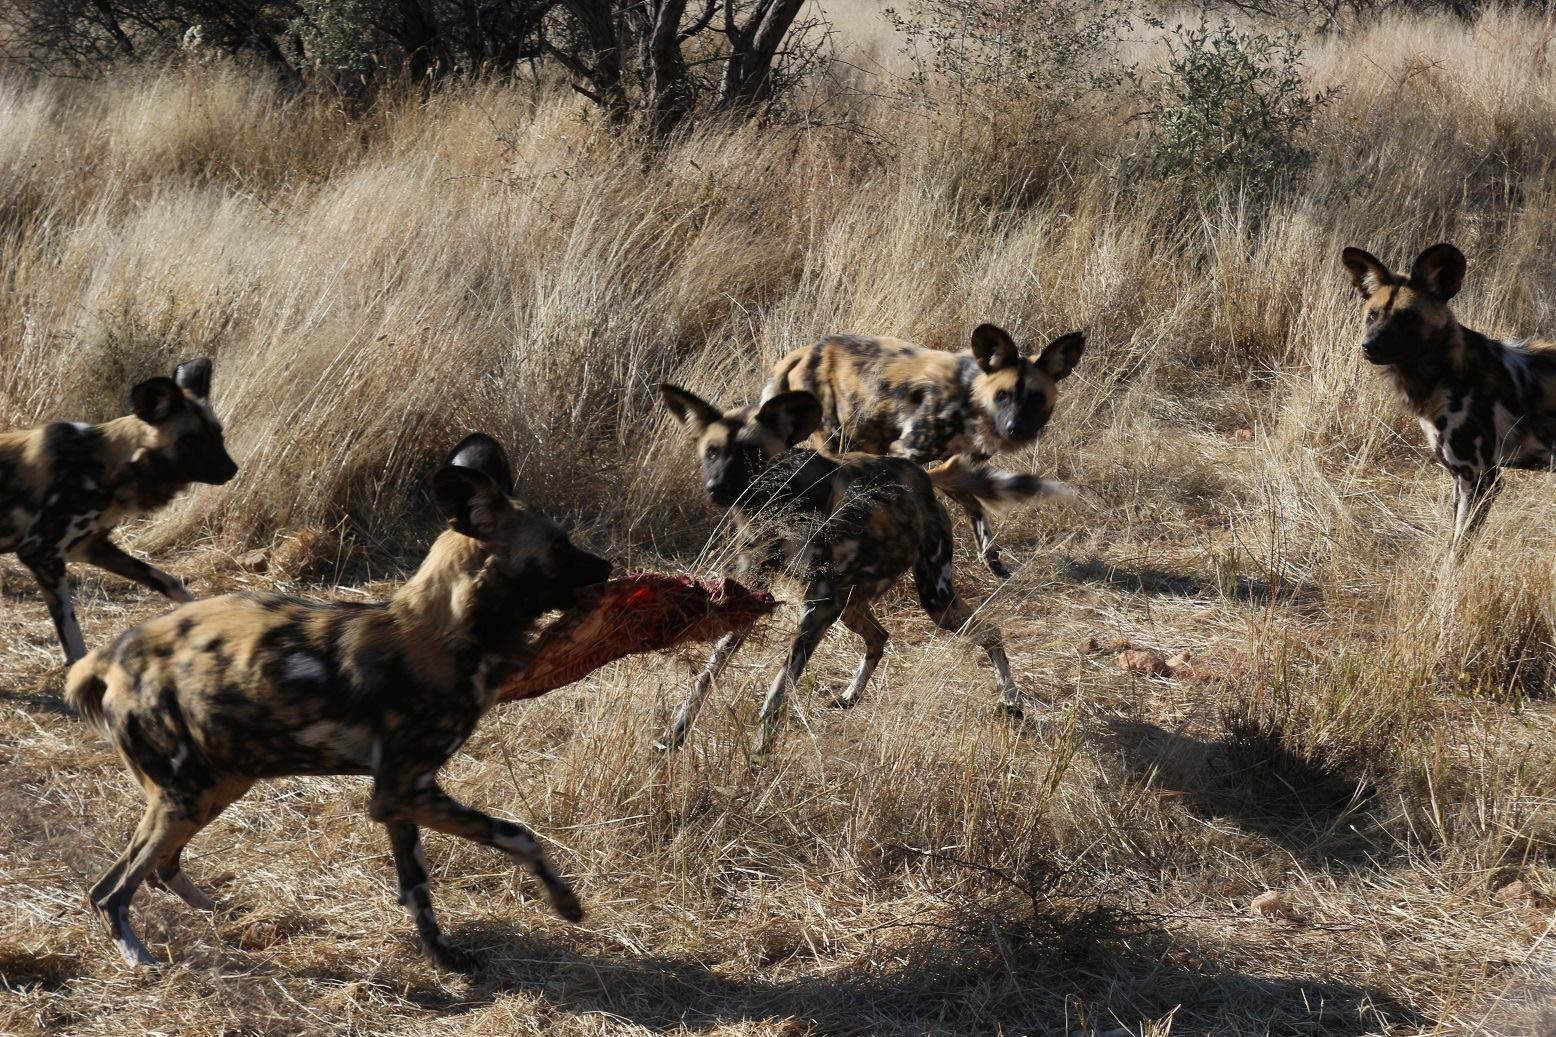 A pack of African Wild Dogs. One of the dogs has a carcass